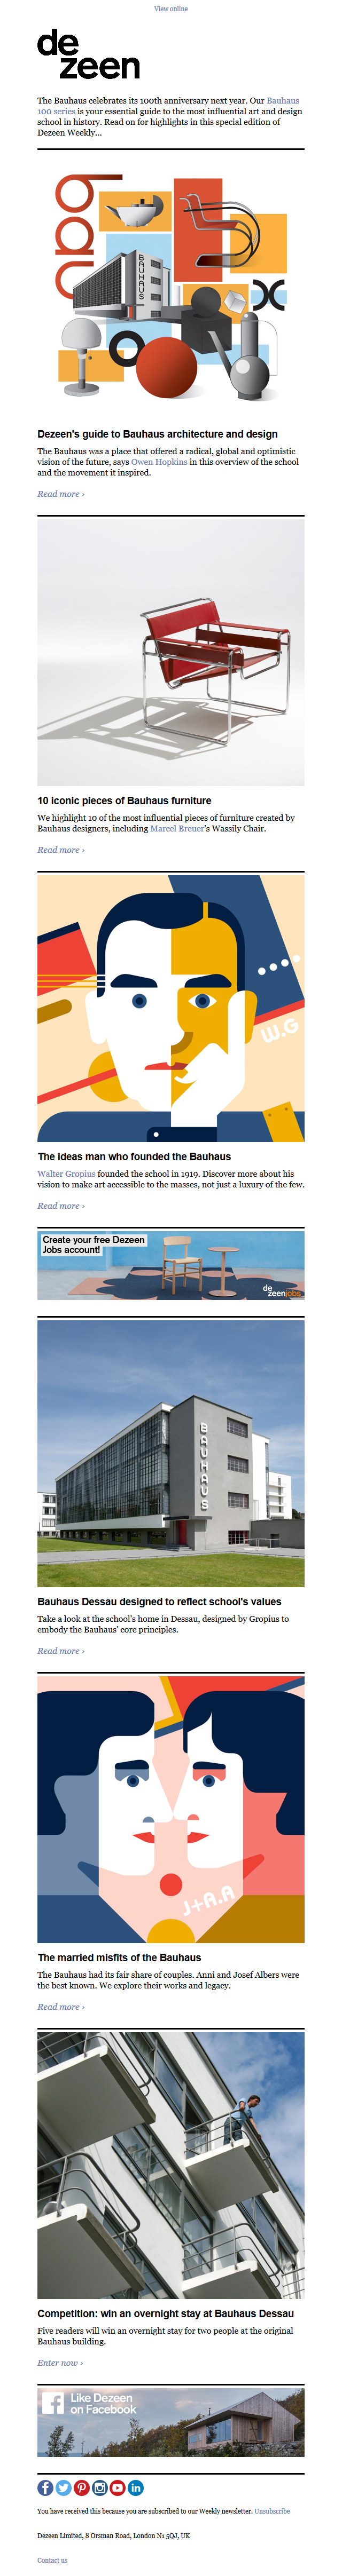 Dezeen's guide to Bauhaus architecture and design